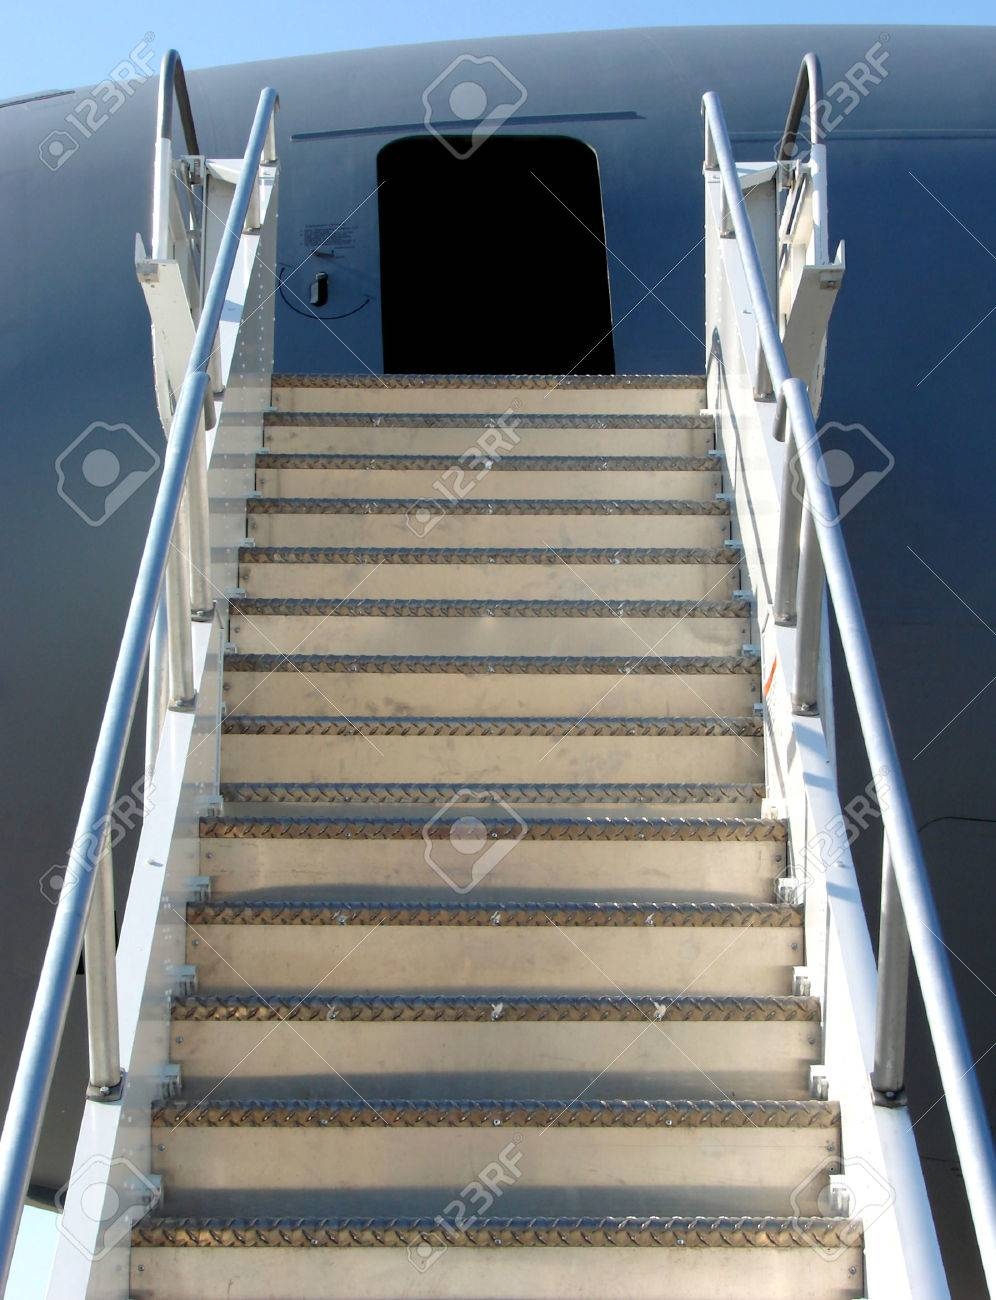 Mobile loading r& on a plane with open door Stock Photo - 1717973 & Mobile Loading Ramp On A Plane With Open Door Stock Photo Picture ... Pezcame.Com